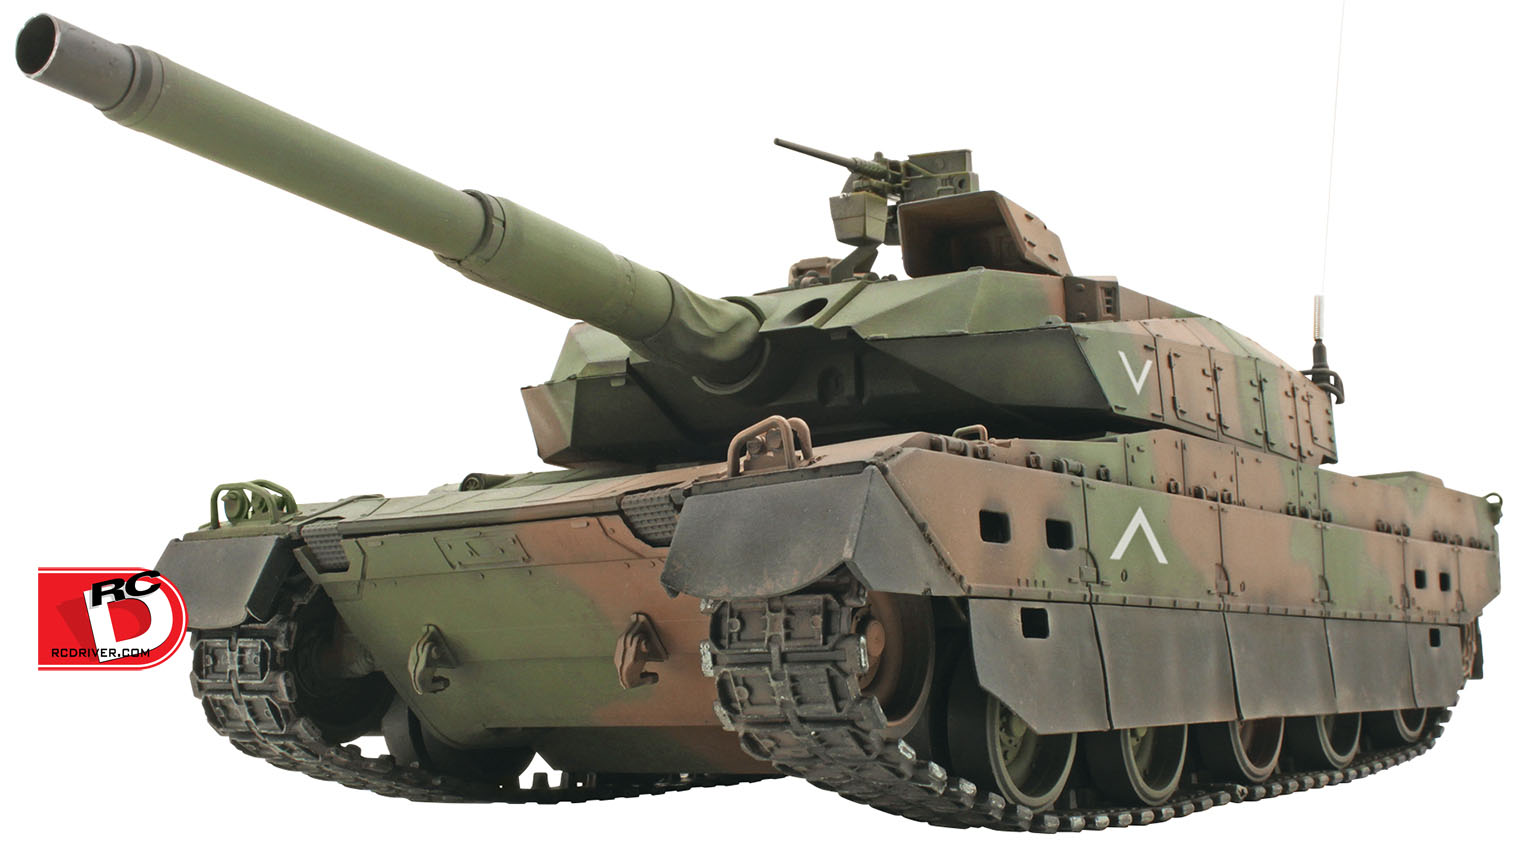 VS Tank USA - King Tiger Porsche Desert Camo & Japanese Type 10  NATO Battle Tanks_2 copy